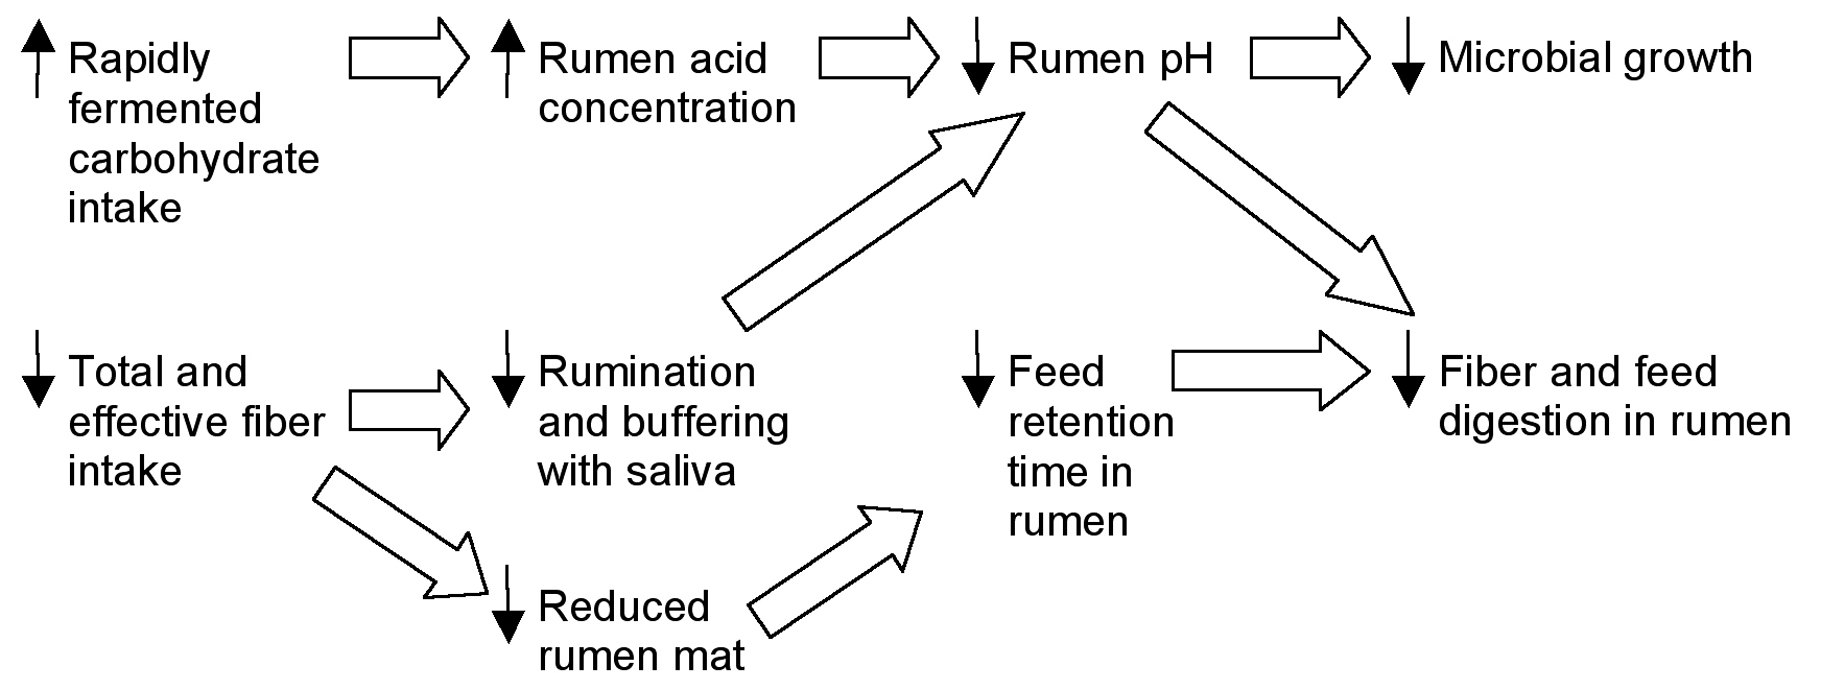 Rumen changes in response to decreased fiber intake (Adapted from Trenkle, 2002).